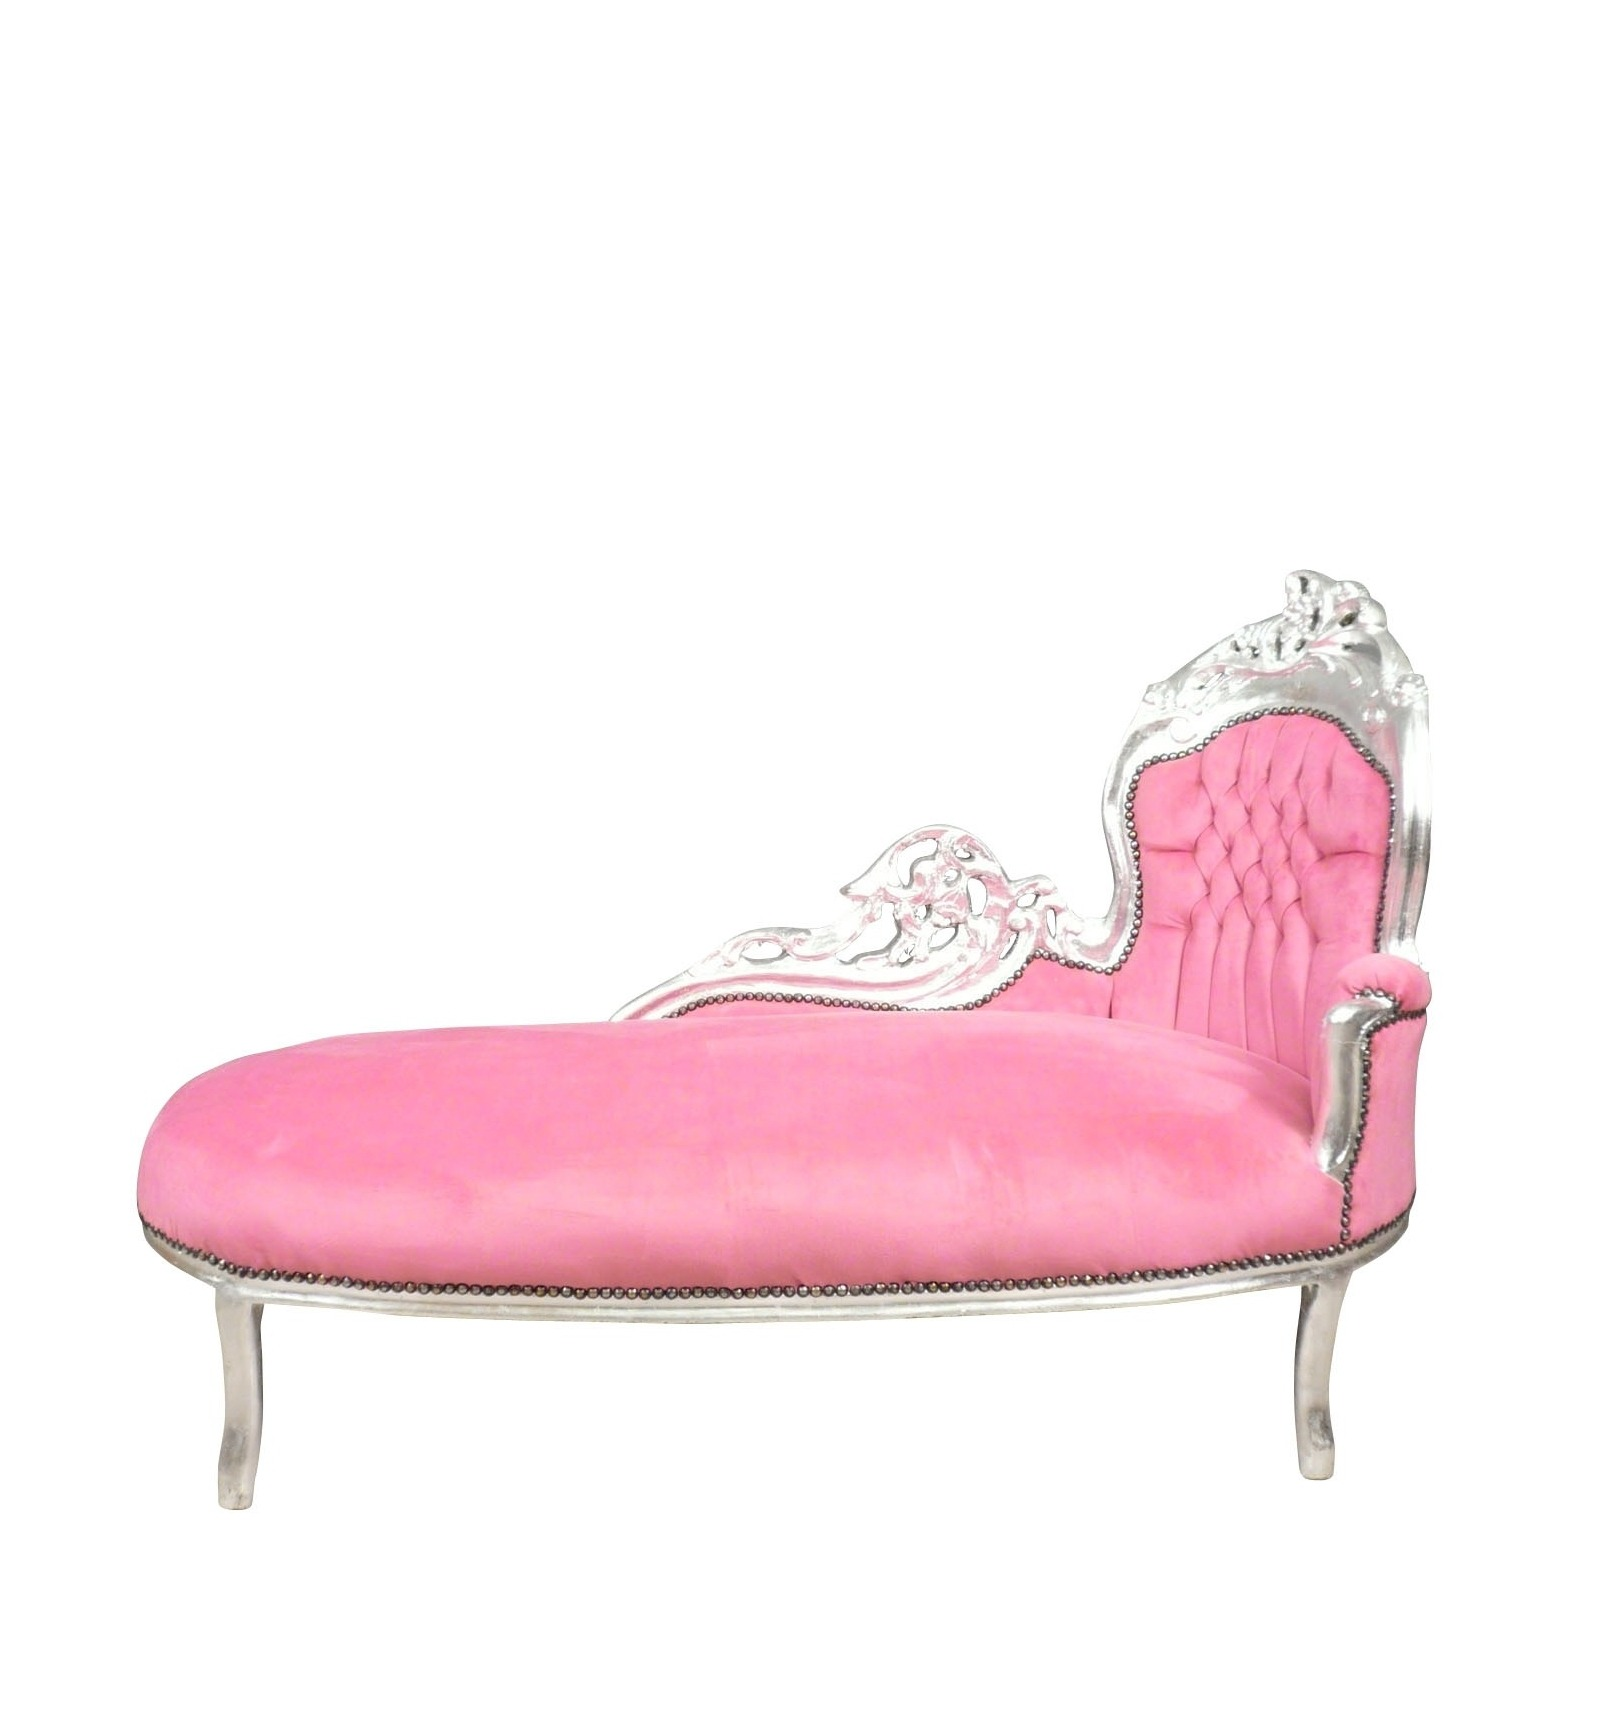 Chaise lounge baroque pink and silver armchair chair for Chaise and lounge